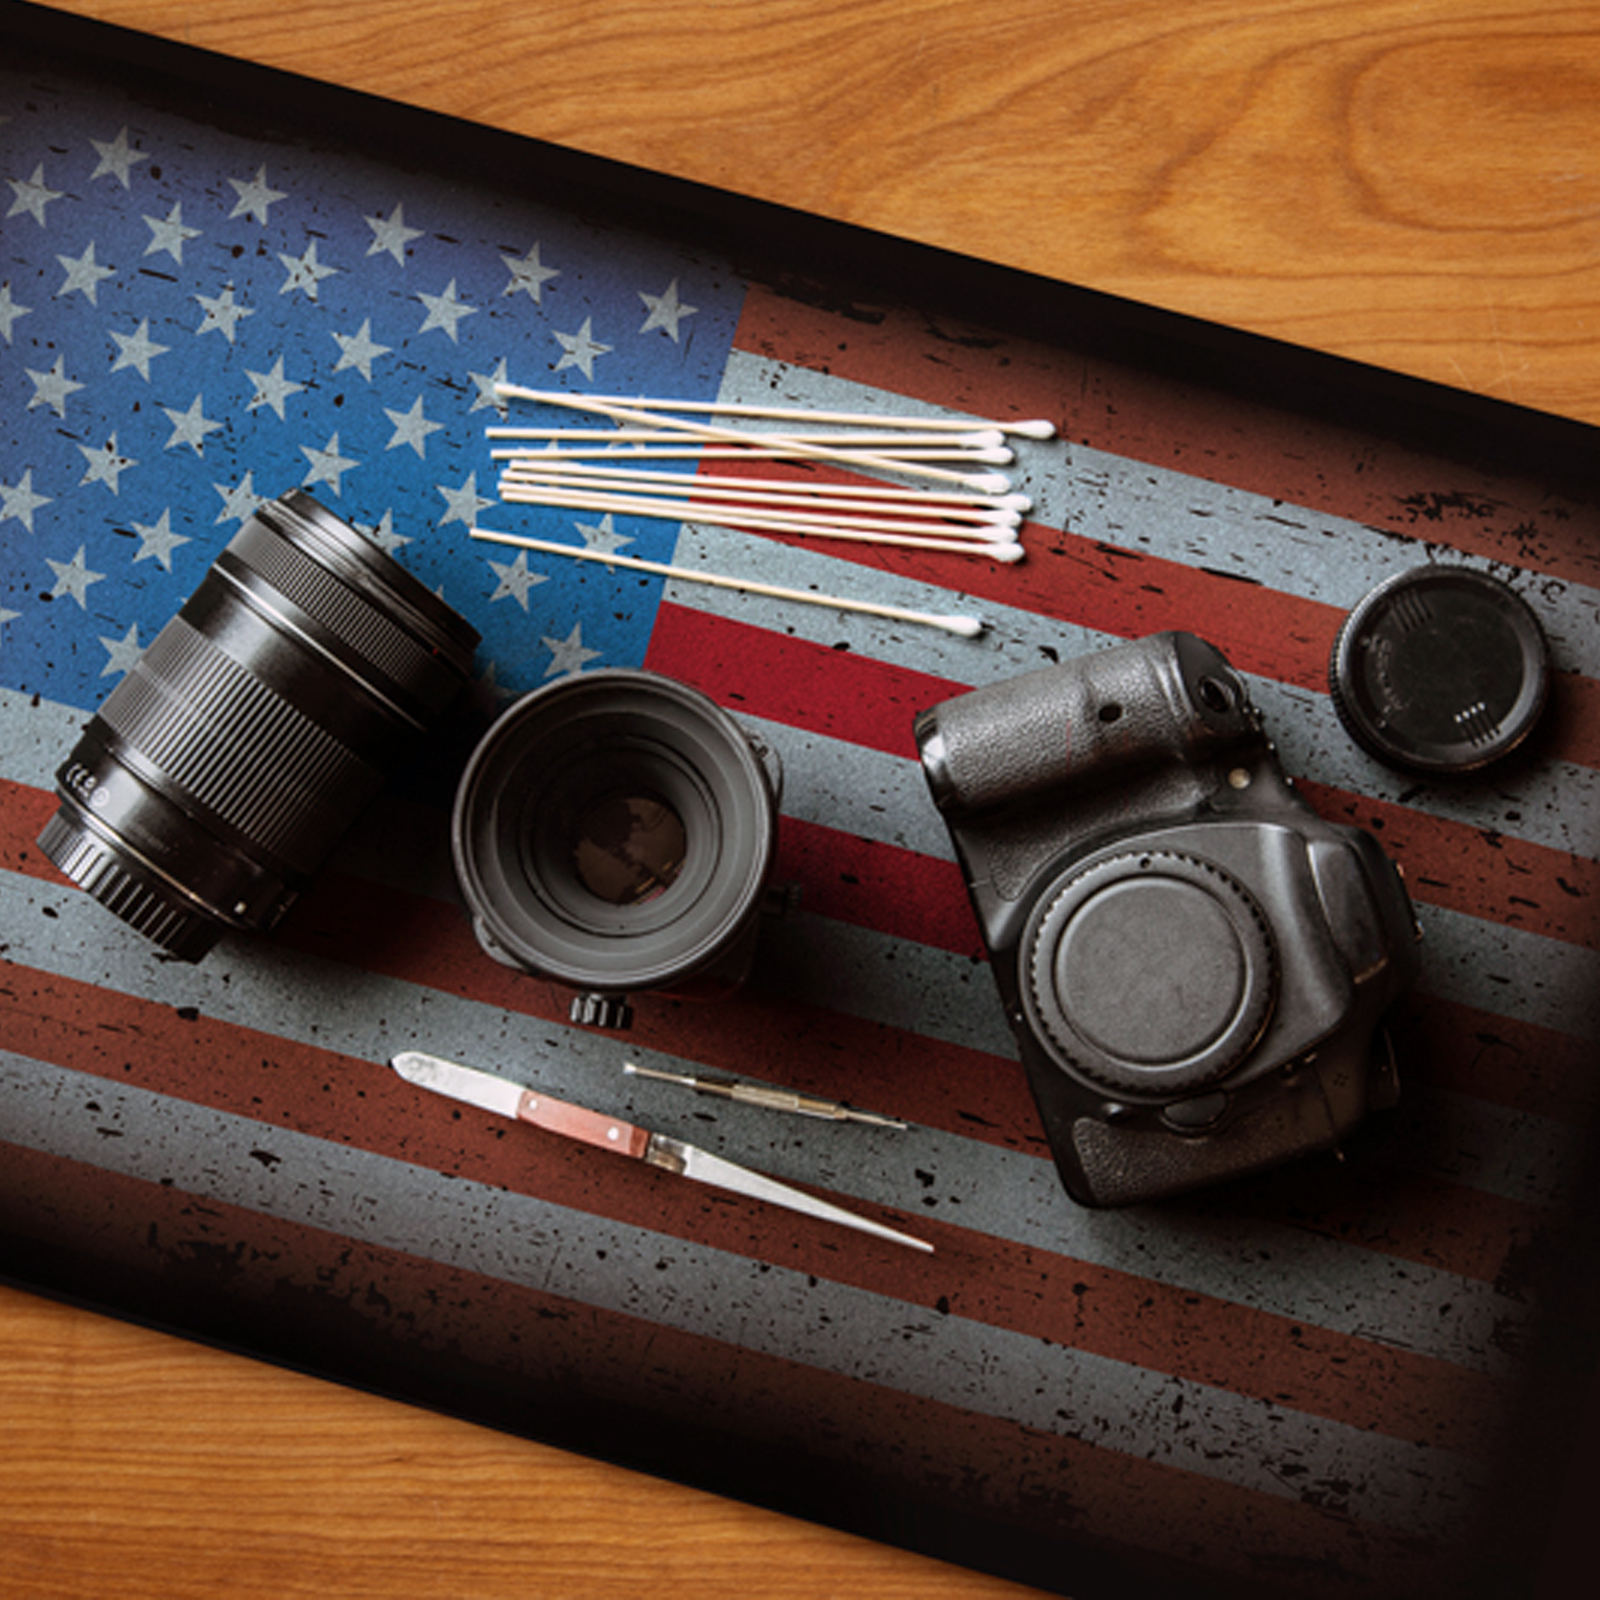 American Flag Non-Slip Gun and Electronics Cleaning Mat 18in